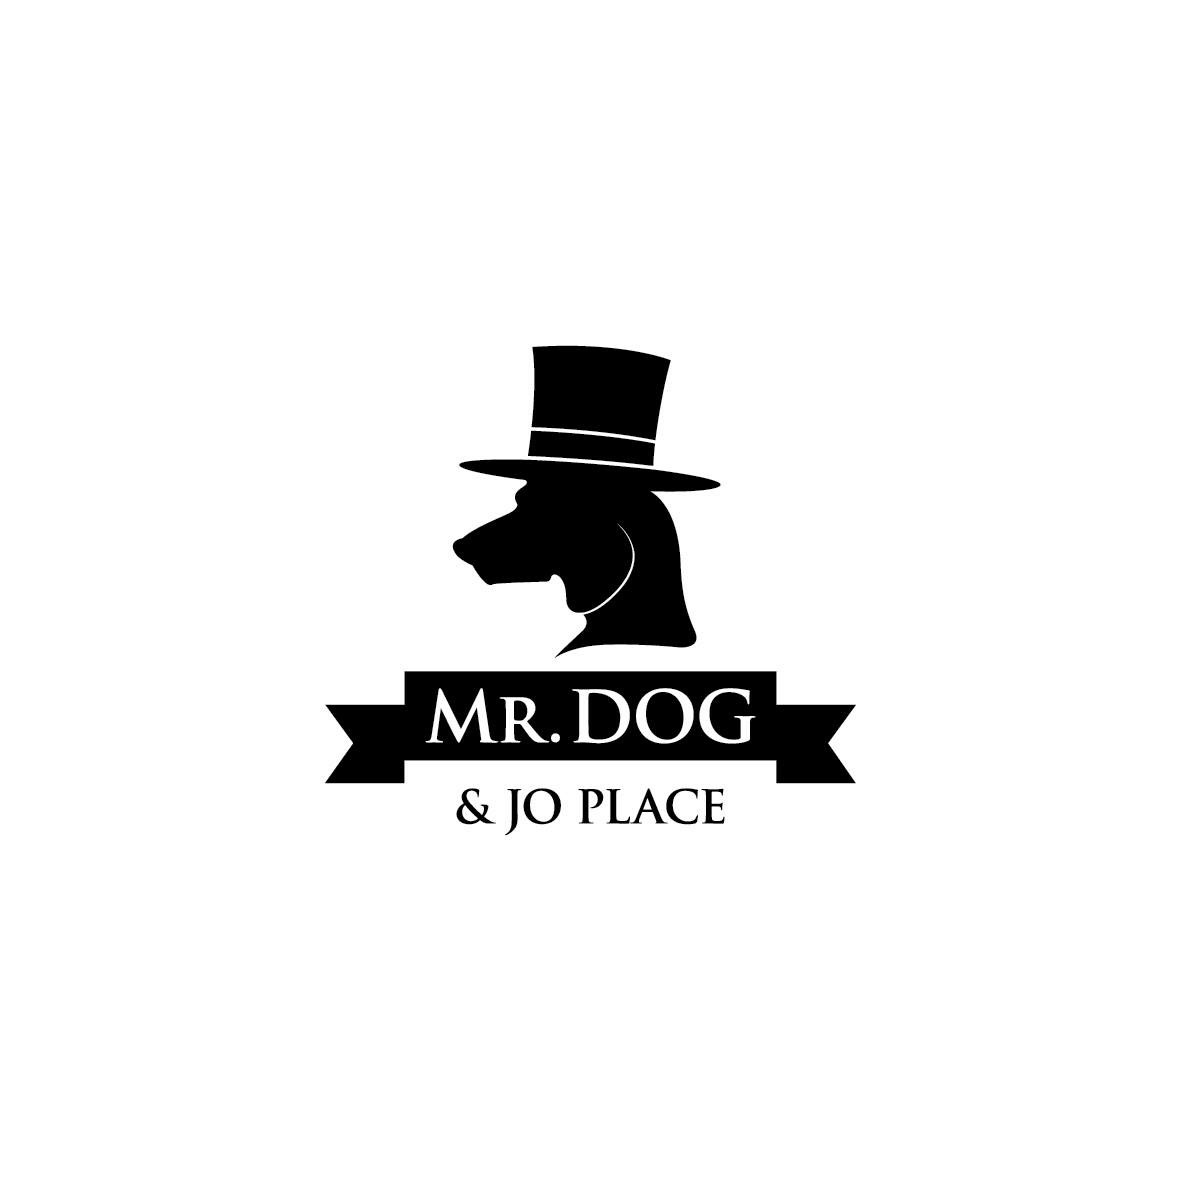 Mr. Dog and Jo Place